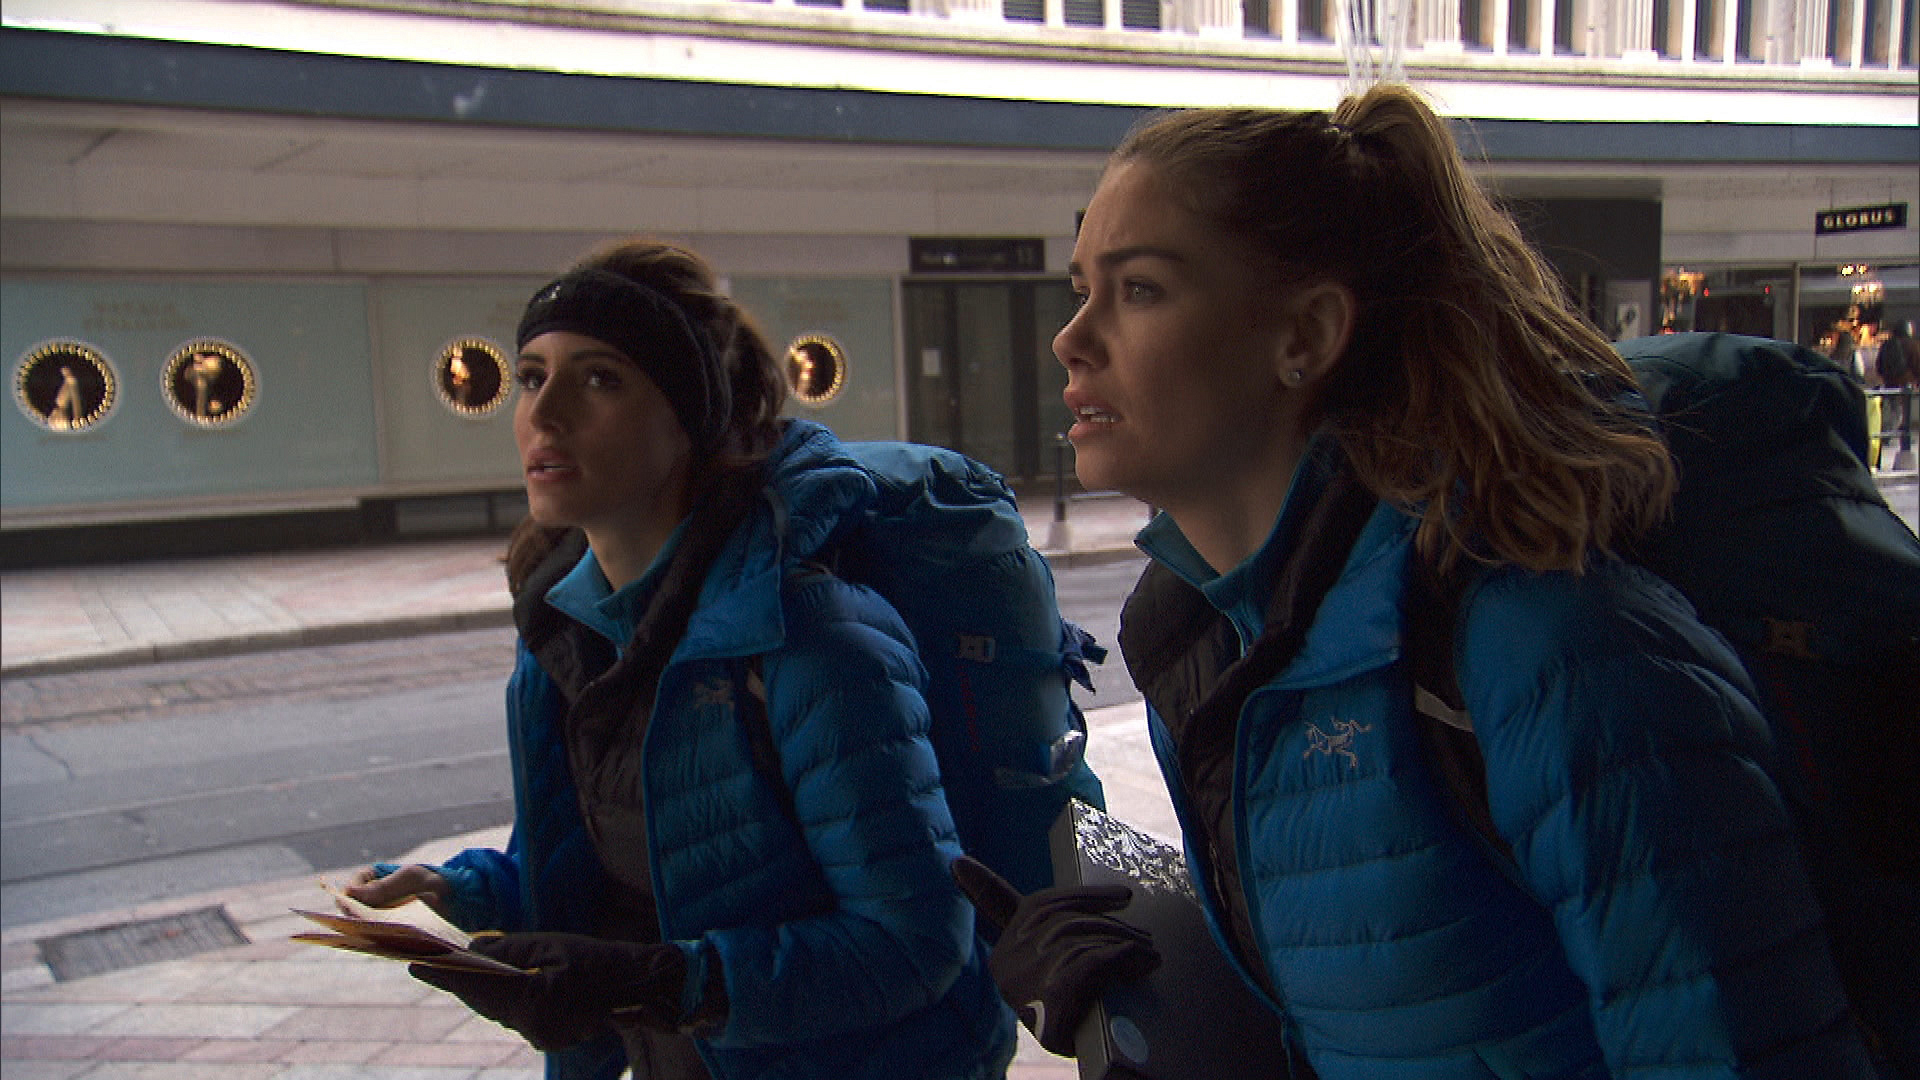 Brittany and Jessica make their way to the next destination.